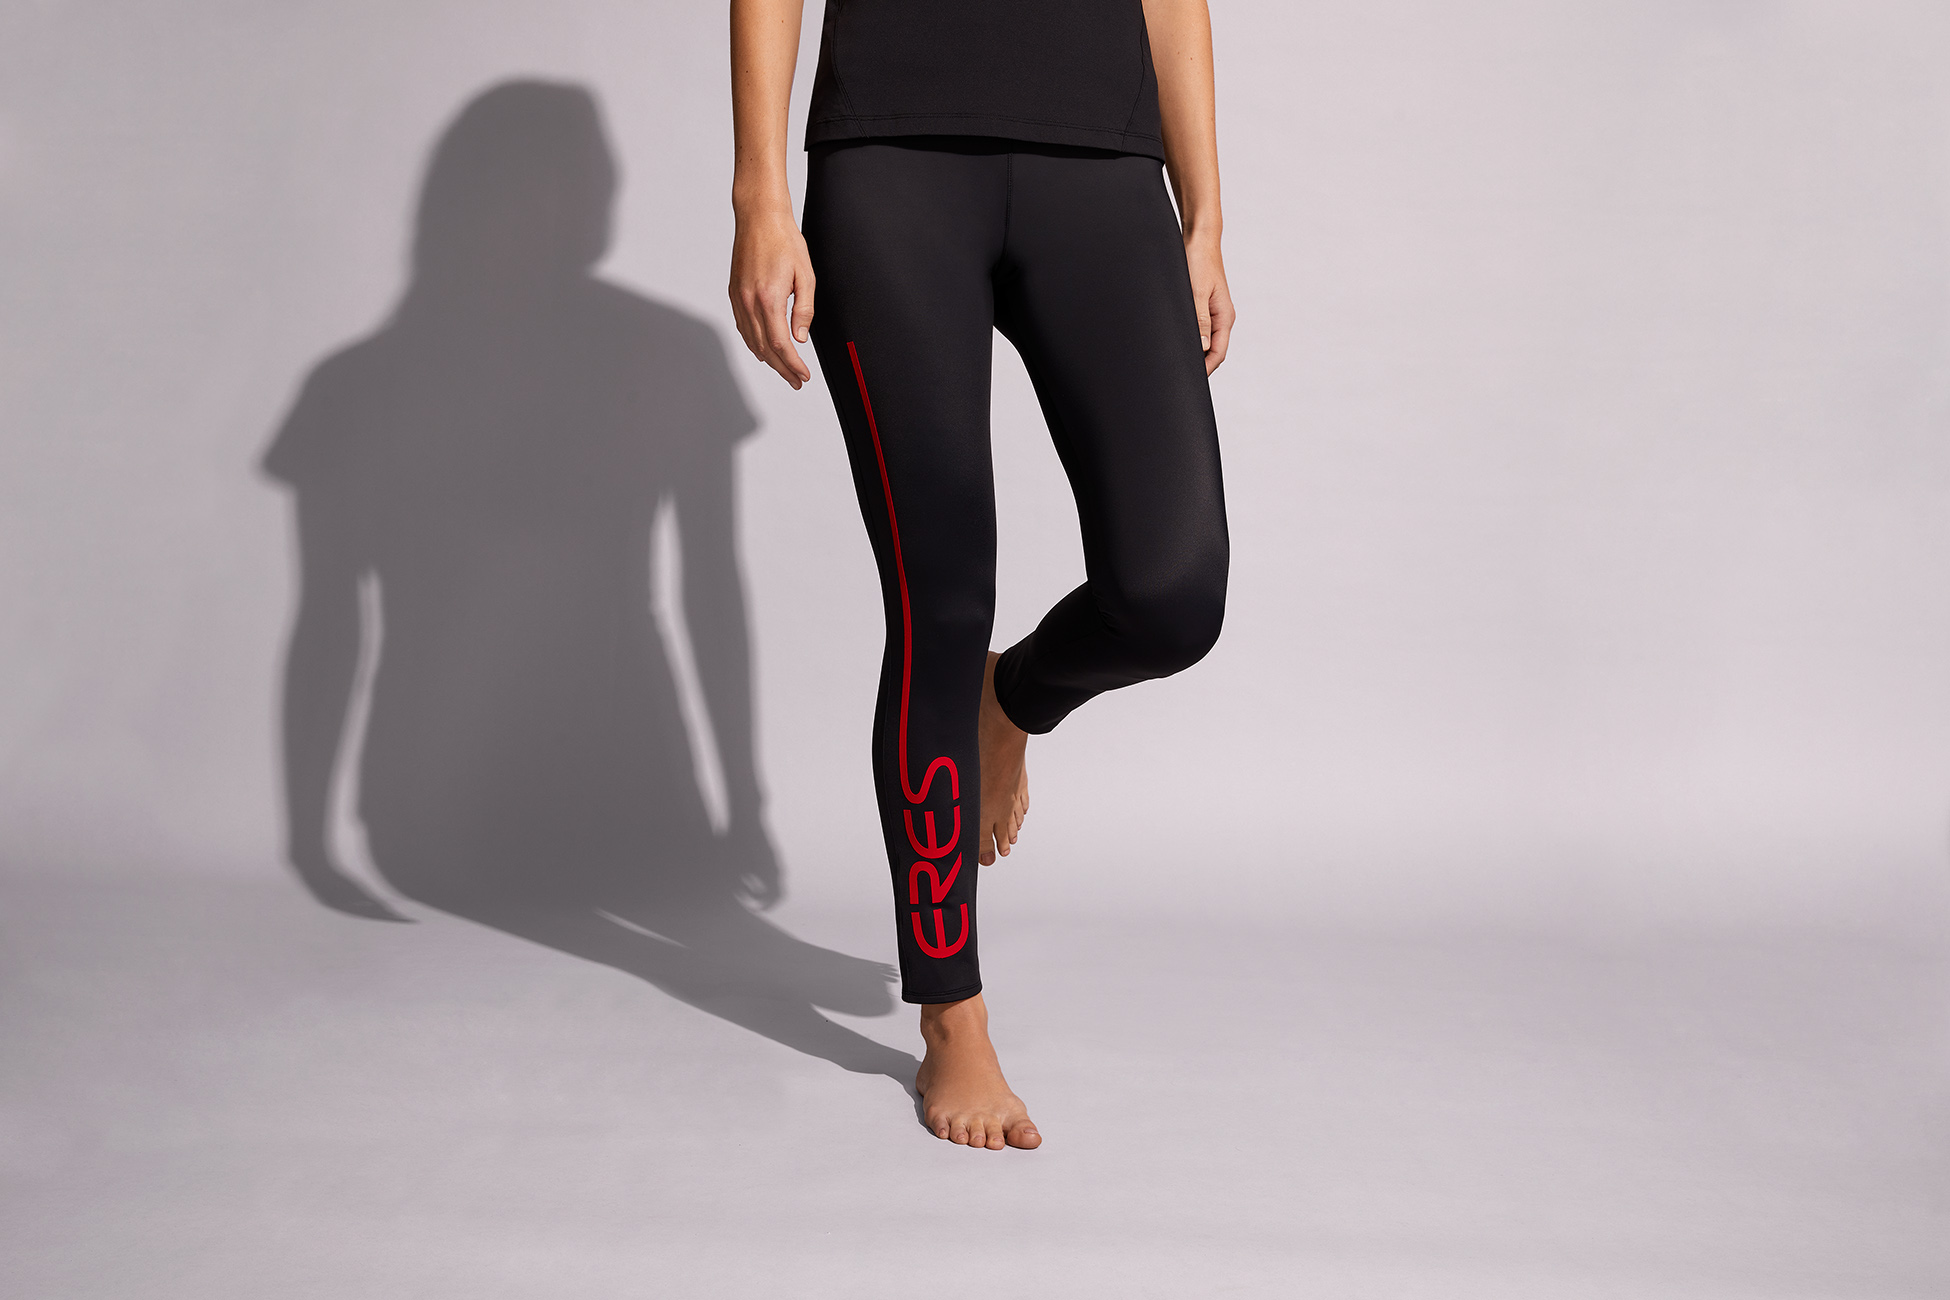 Mindful Legging Vista estándar 1